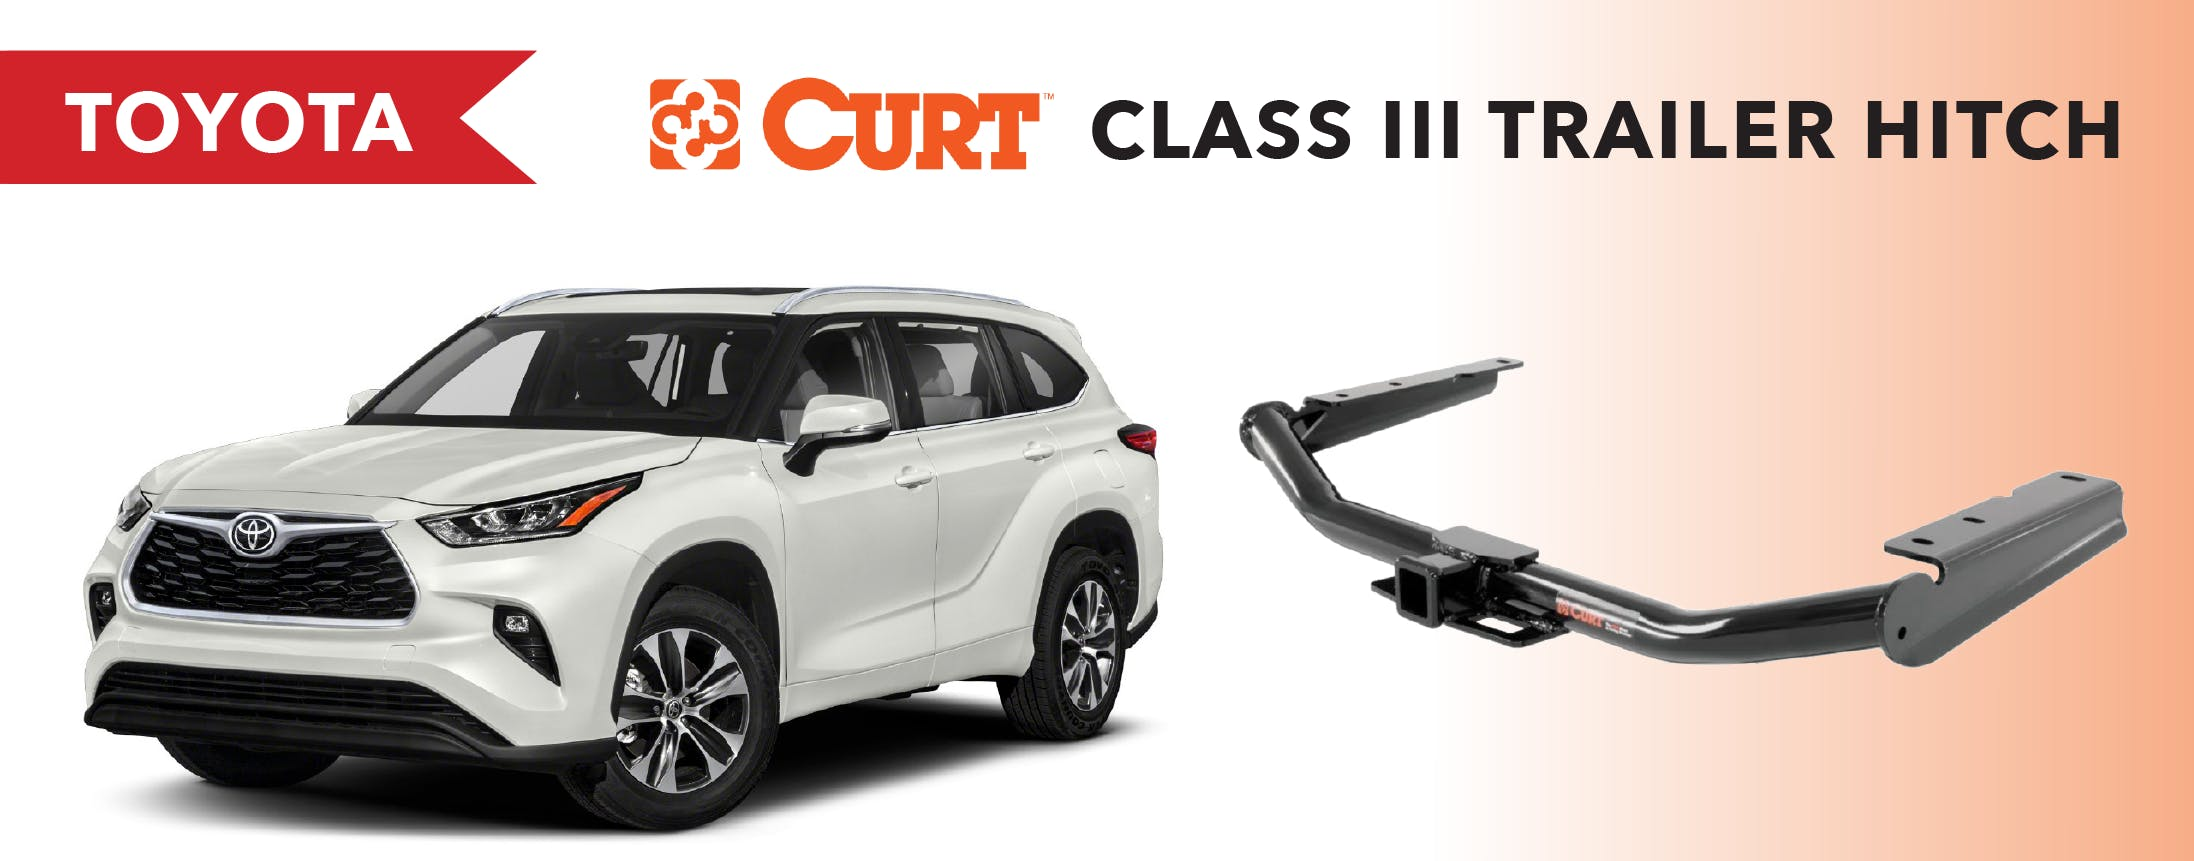 TOYOTA - class 3 trailer hitch title image